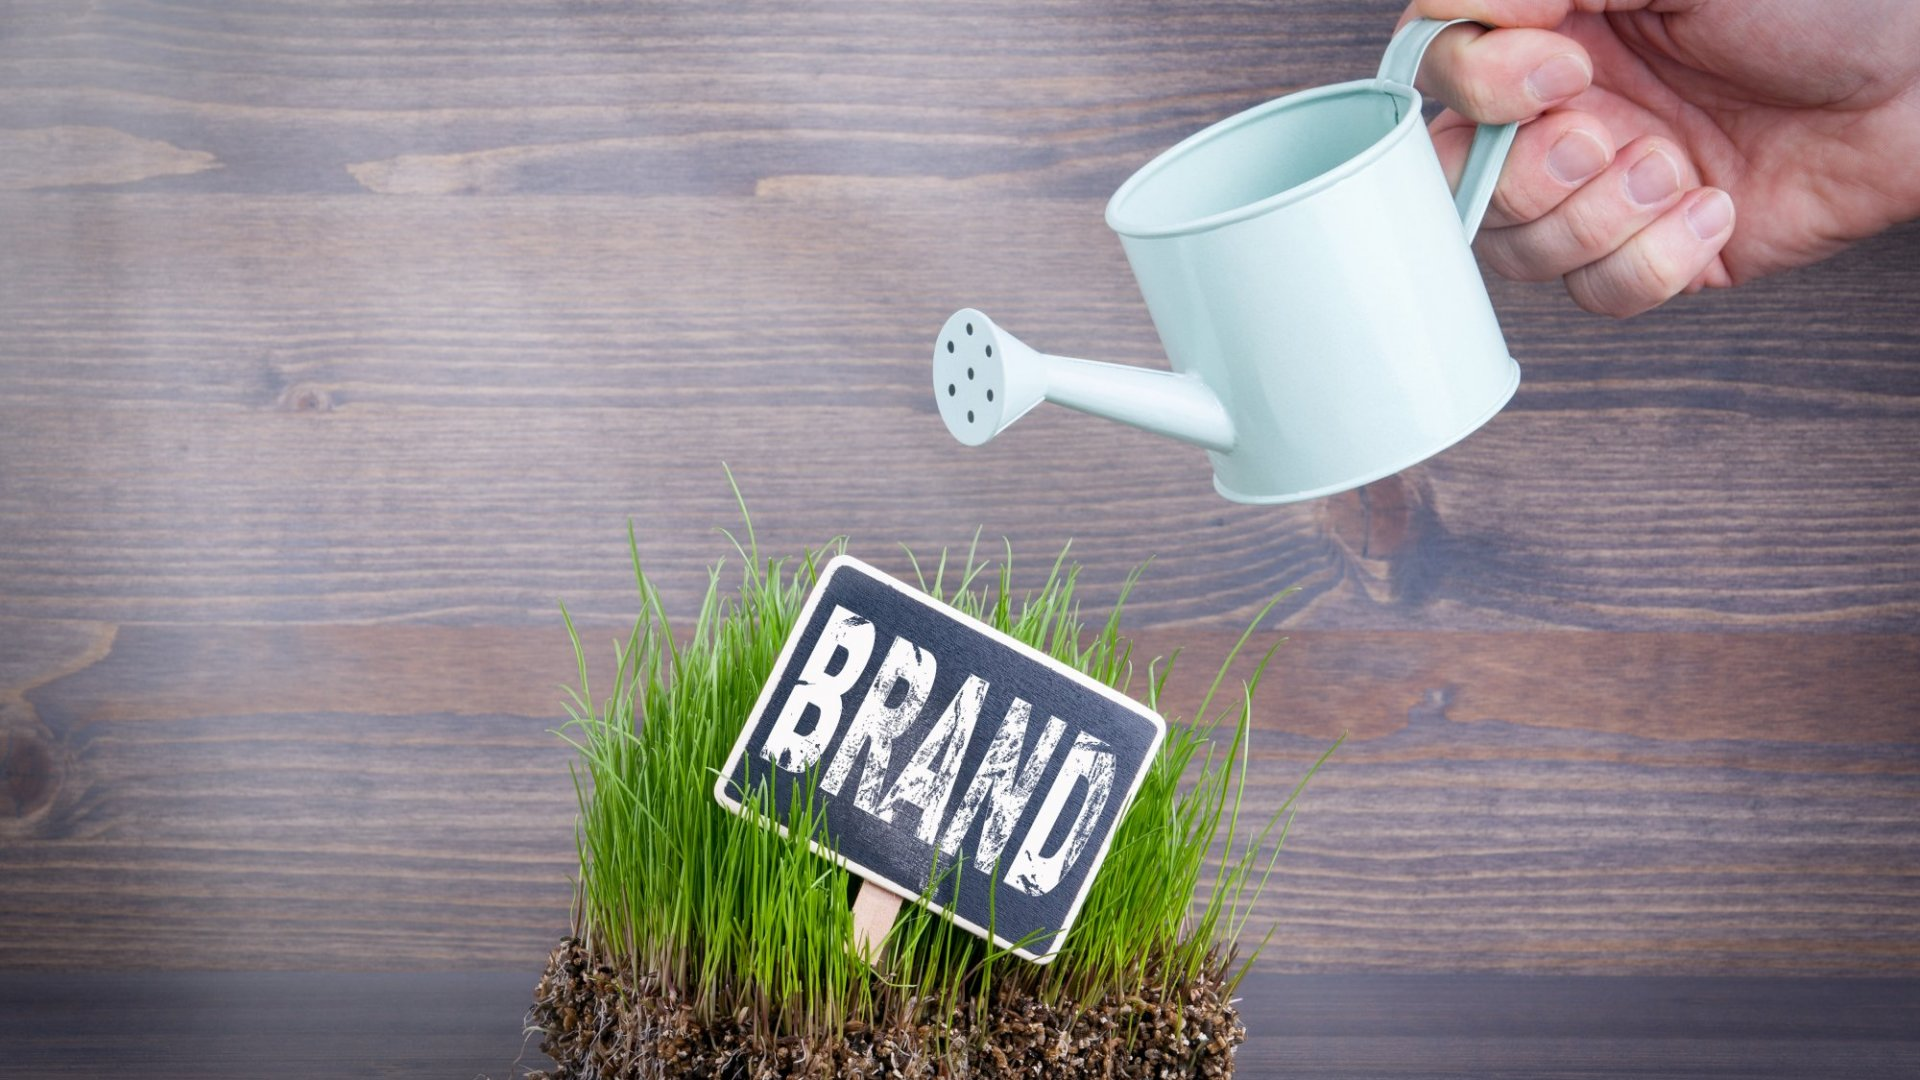 How to Make People Care About Your Brand